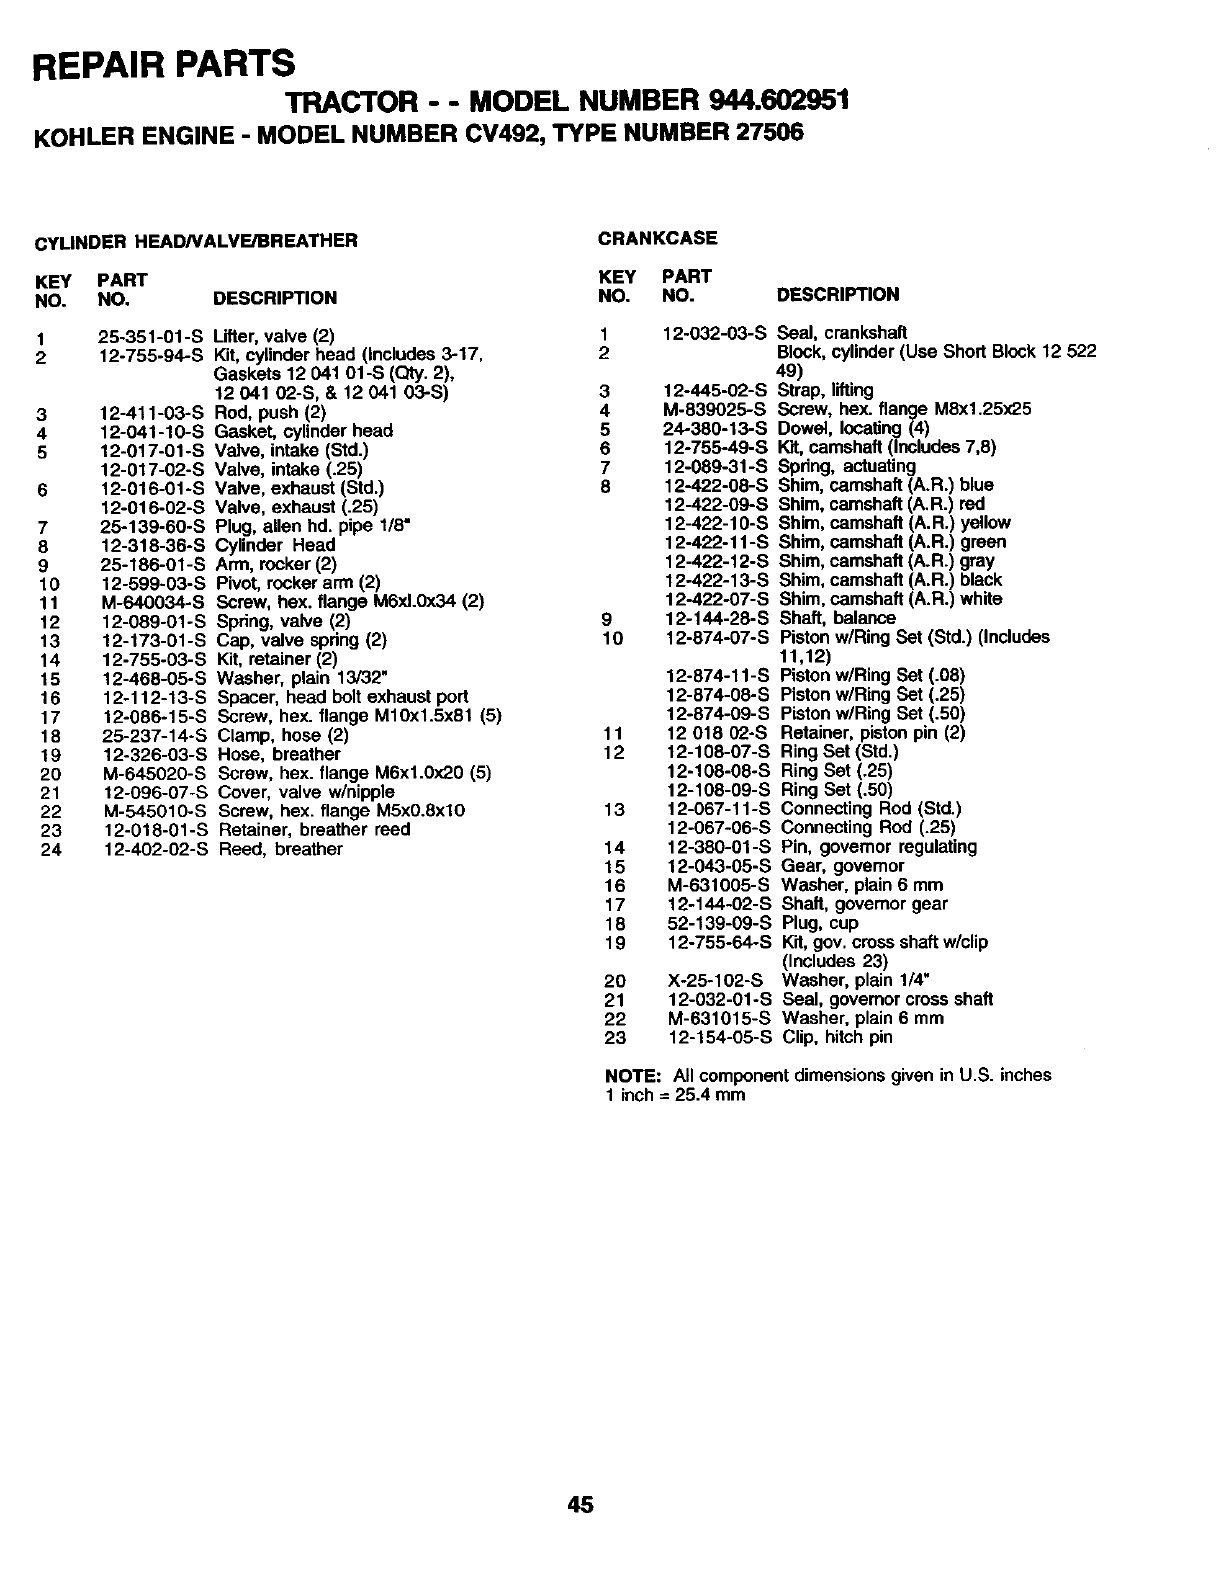 Page 45 of Craftsman Lawn Mower 944.602951 User Guide